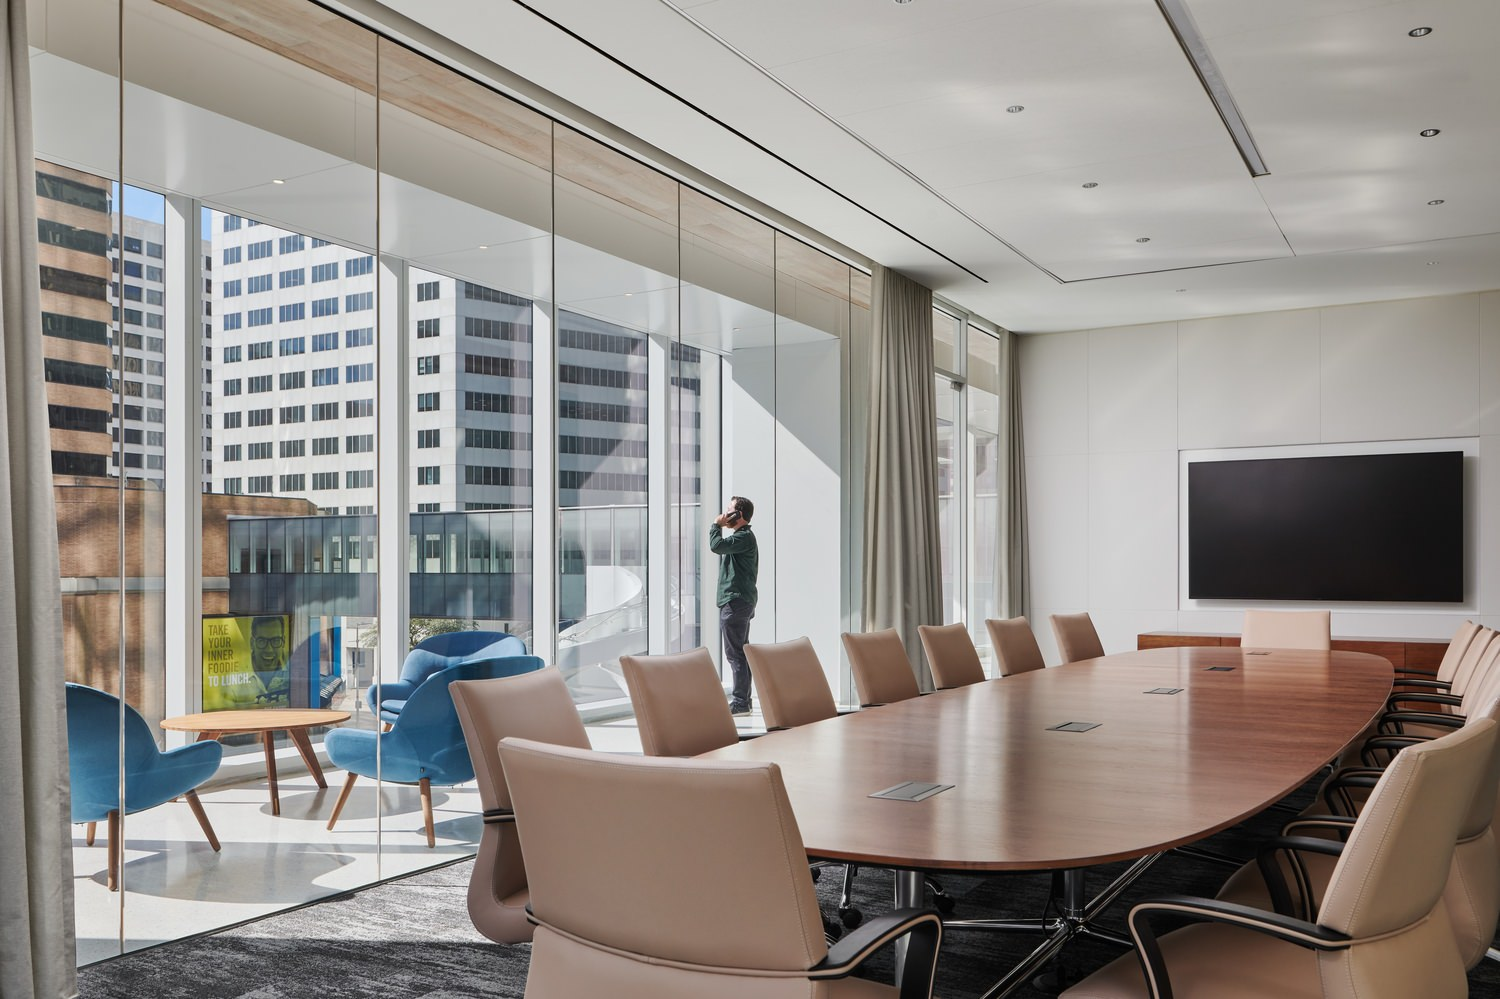 A board room that has a large table in the middle of it and a lot of chairs around it as well as a TV on a wall.